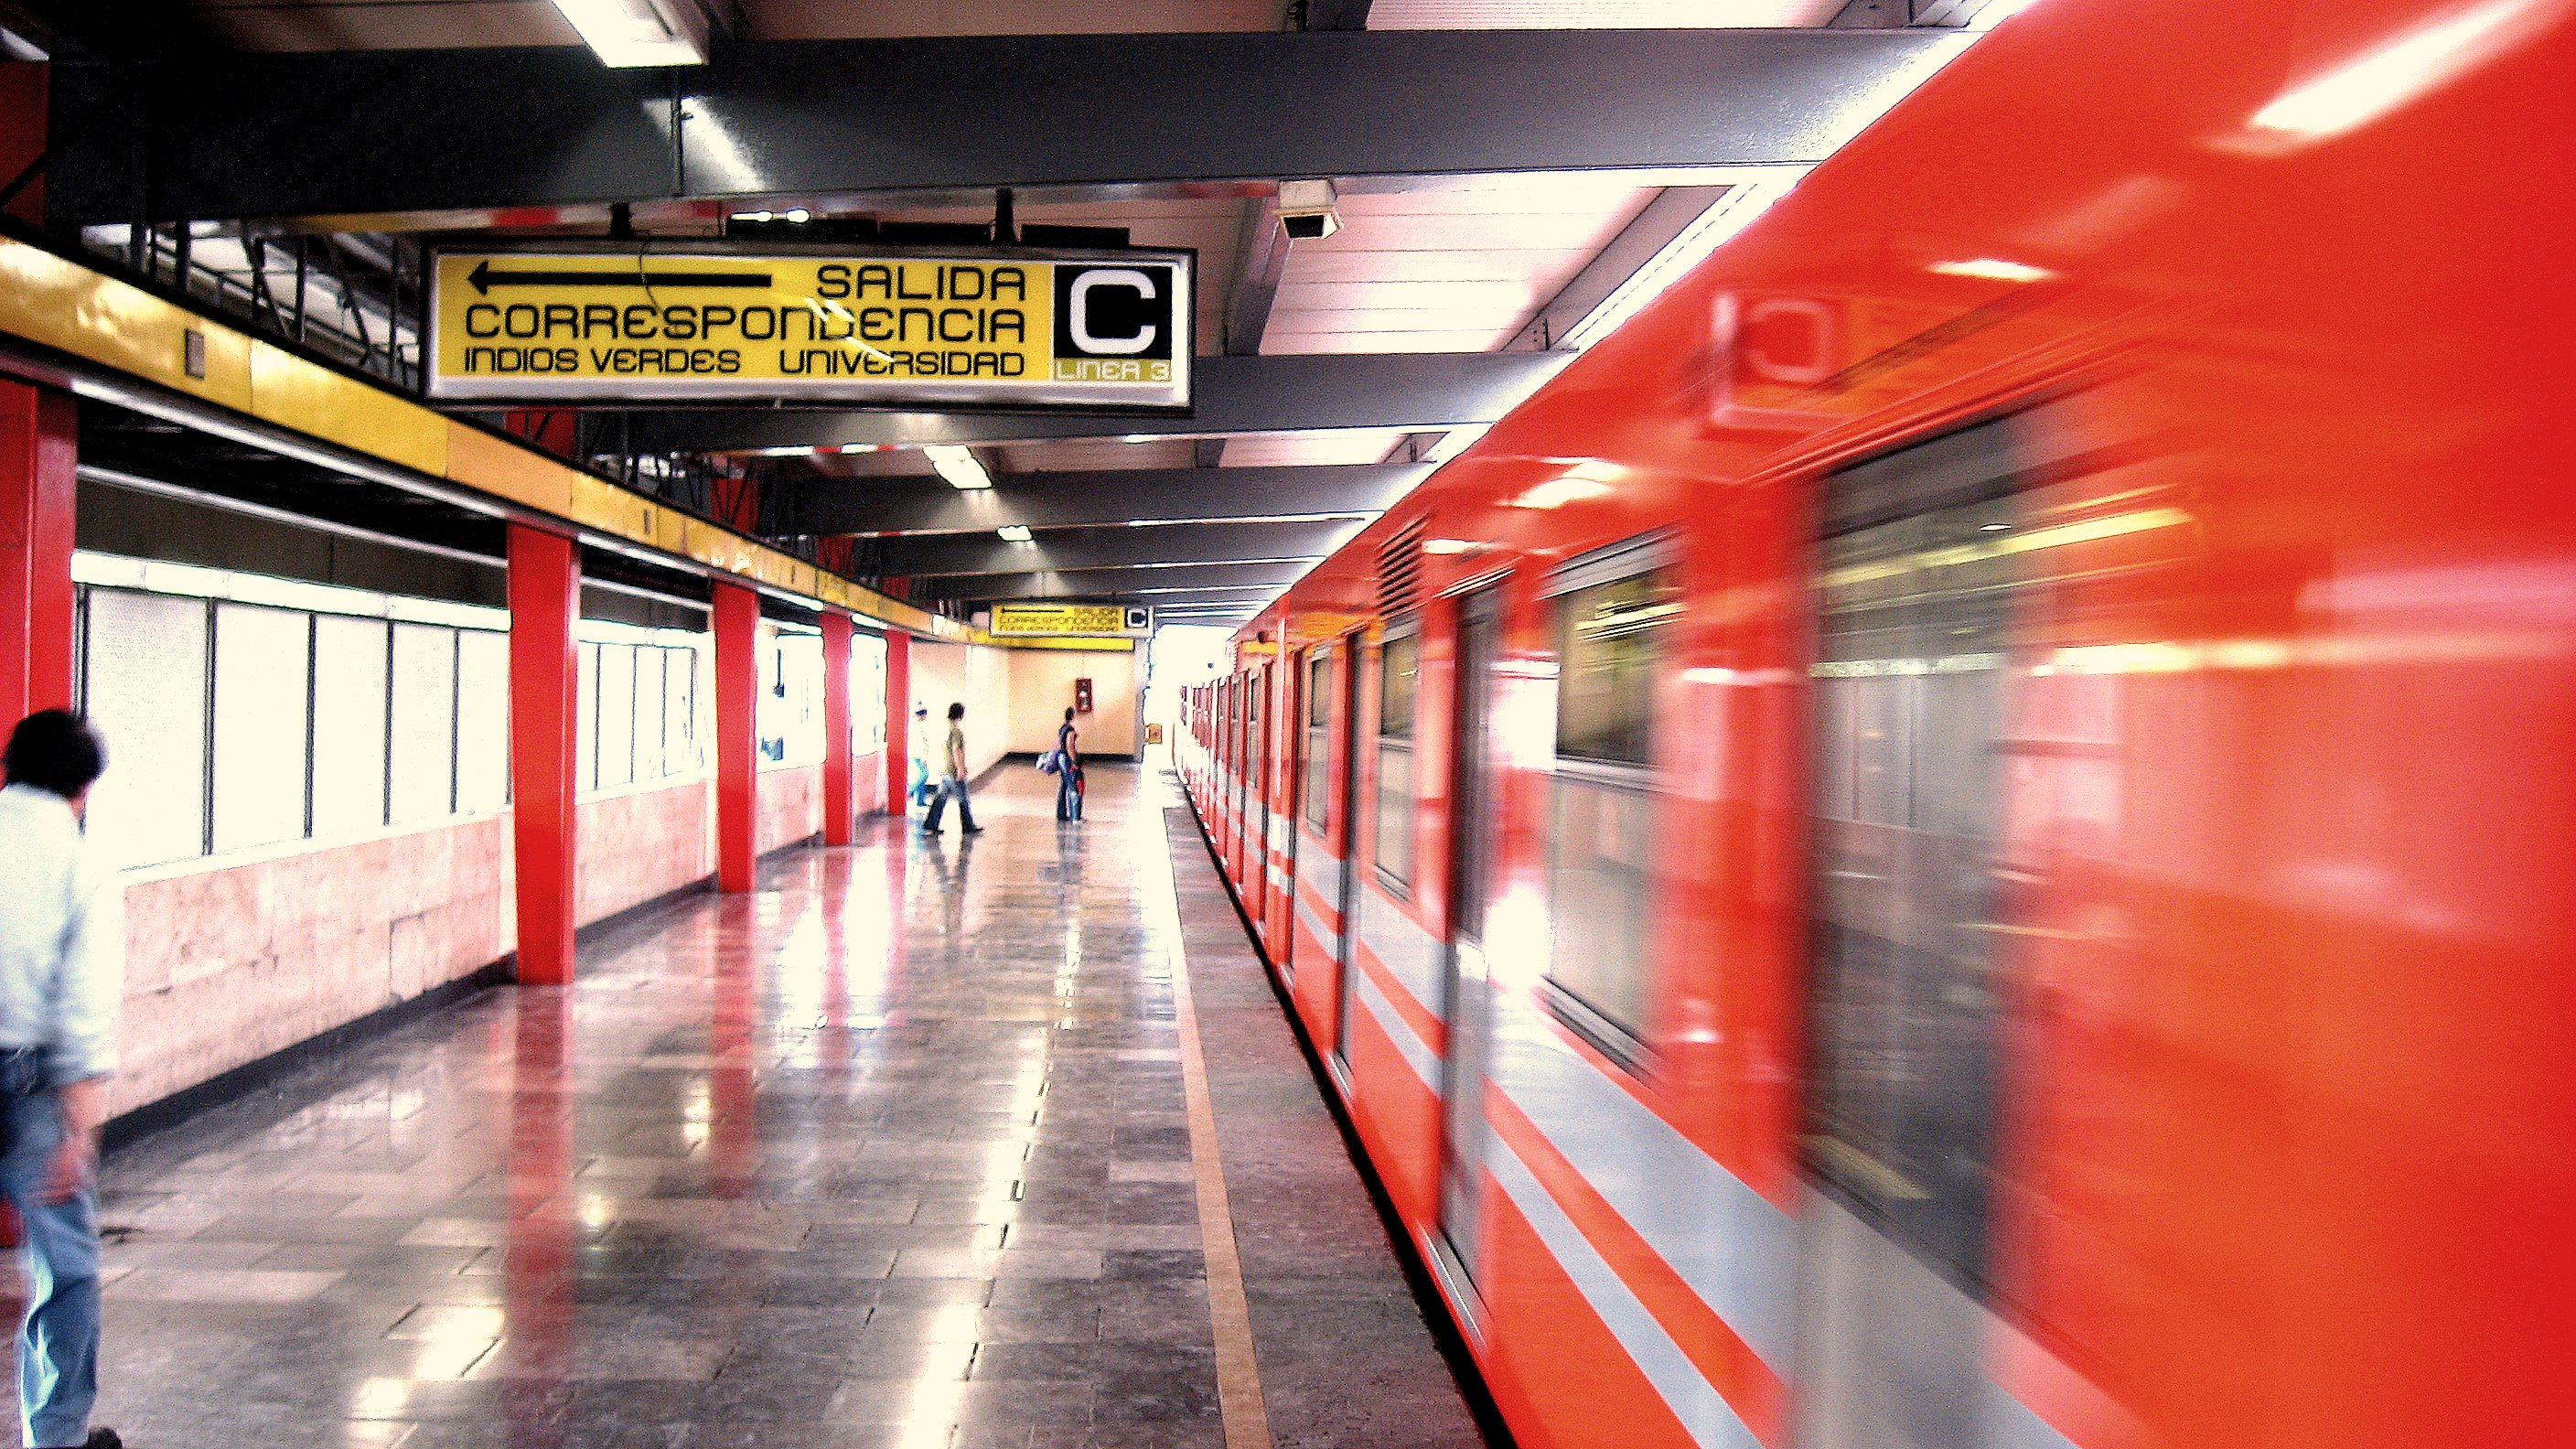 Taking public transportation is something to consider in mexico city prices while traveling